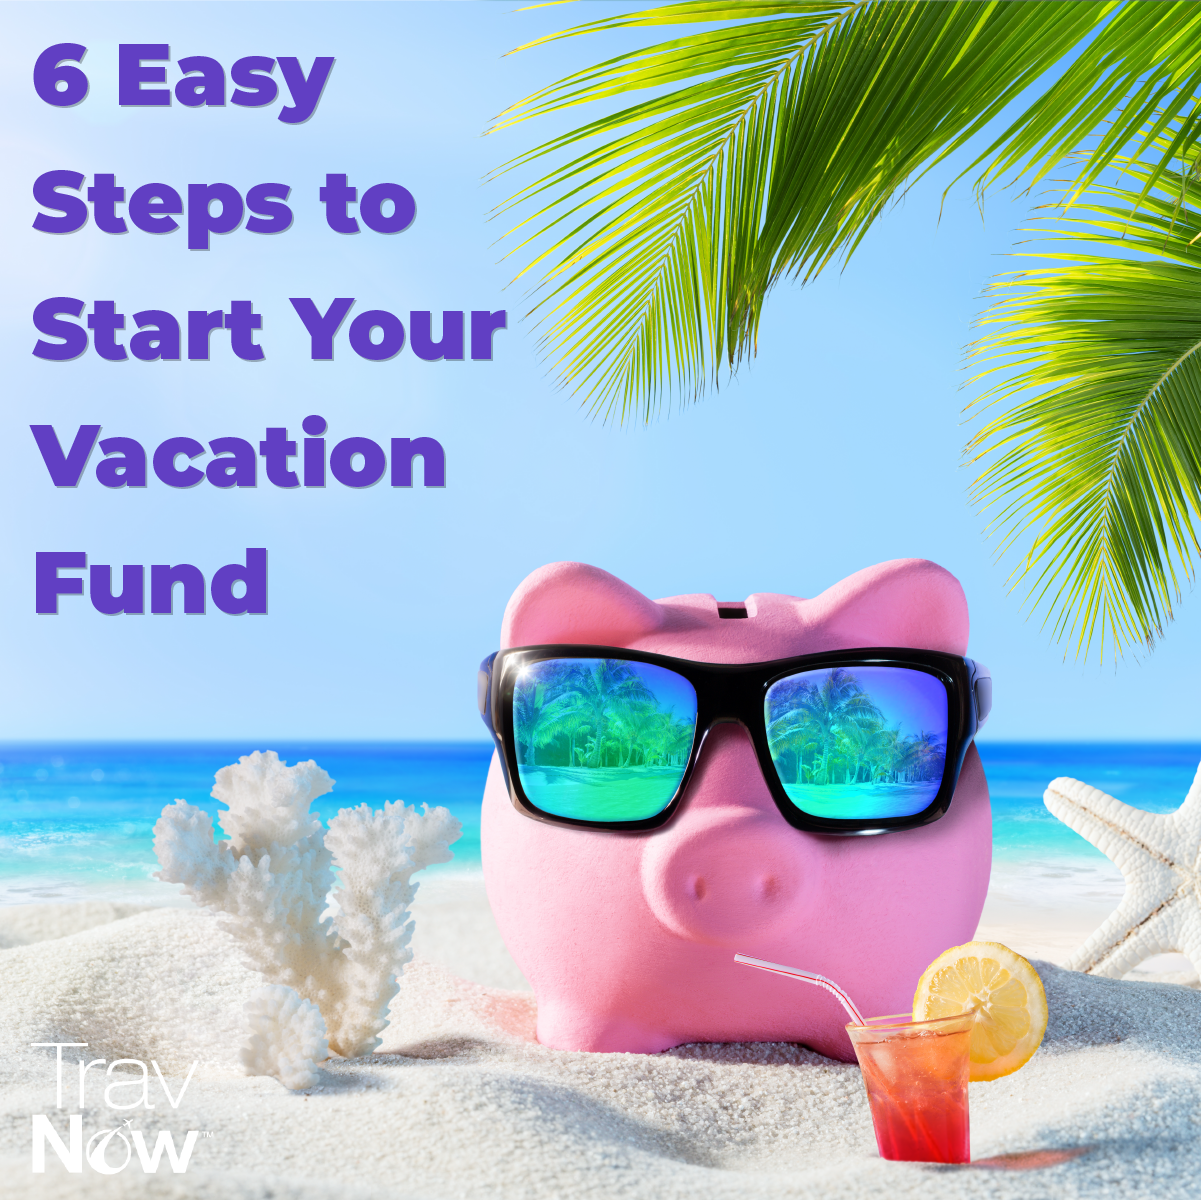 6_Easy_Steps_For_Vacation_Fund.png